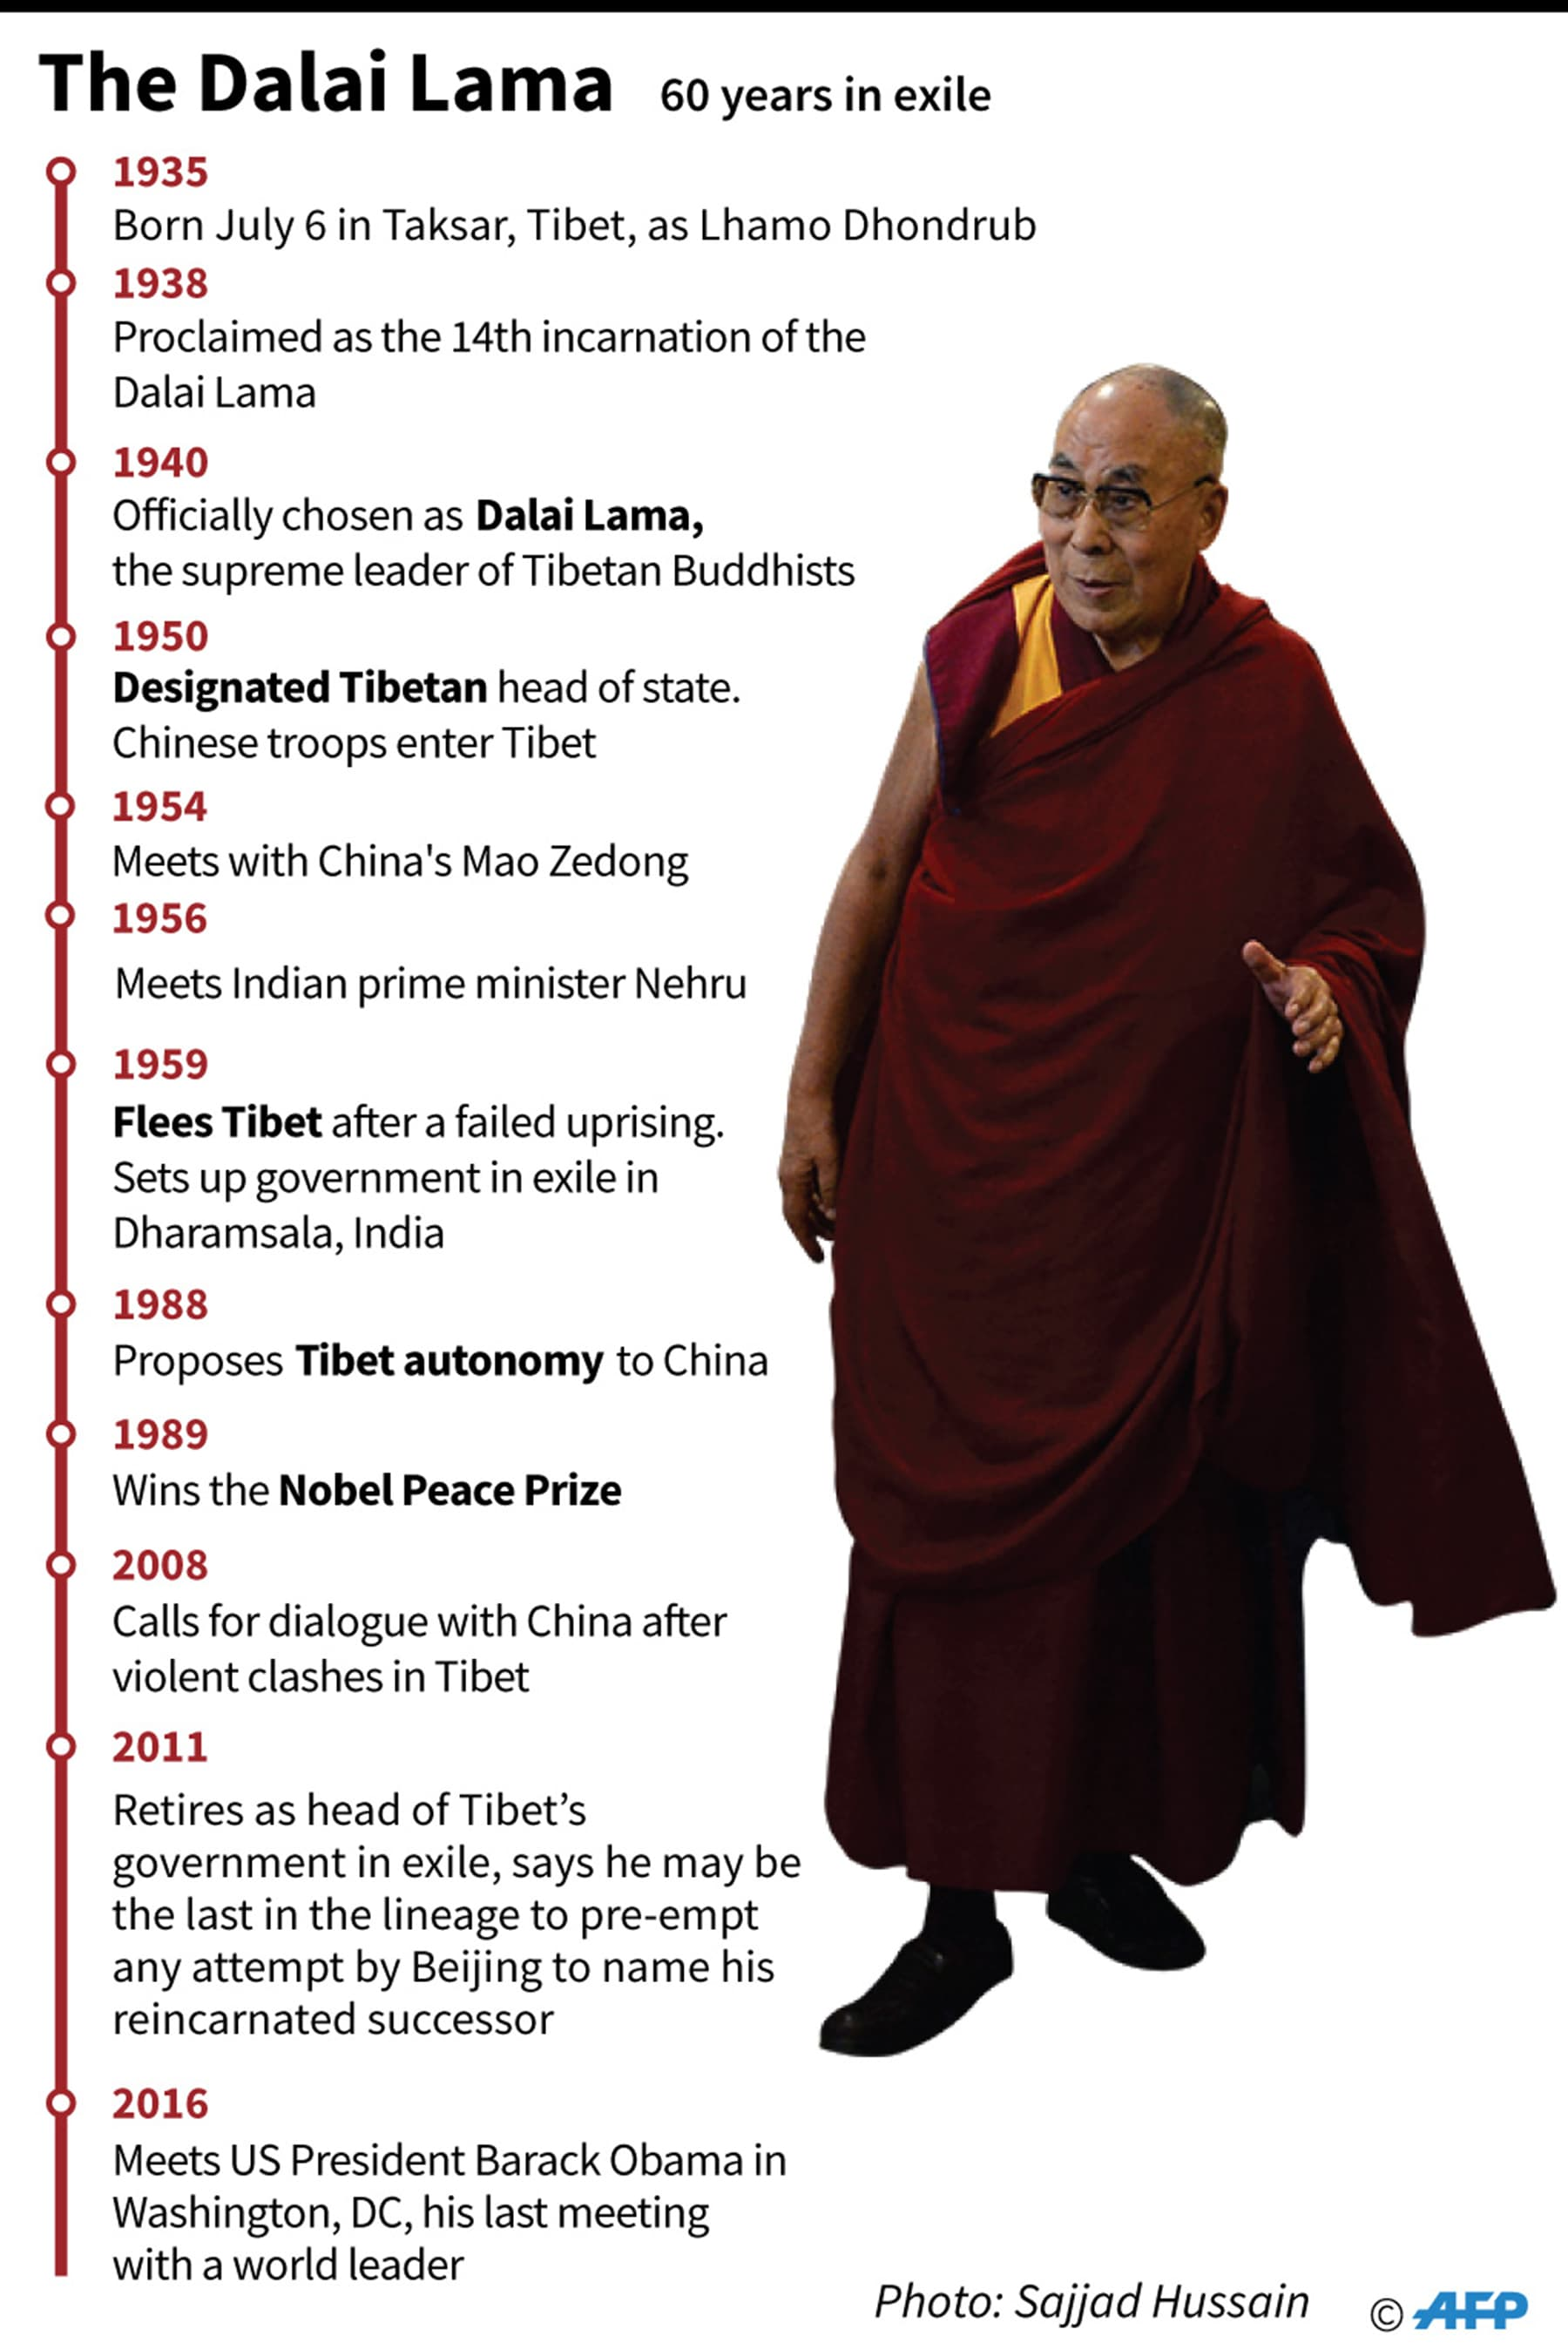 A graphic recapping major events from the spiritual leader's life. — AFP